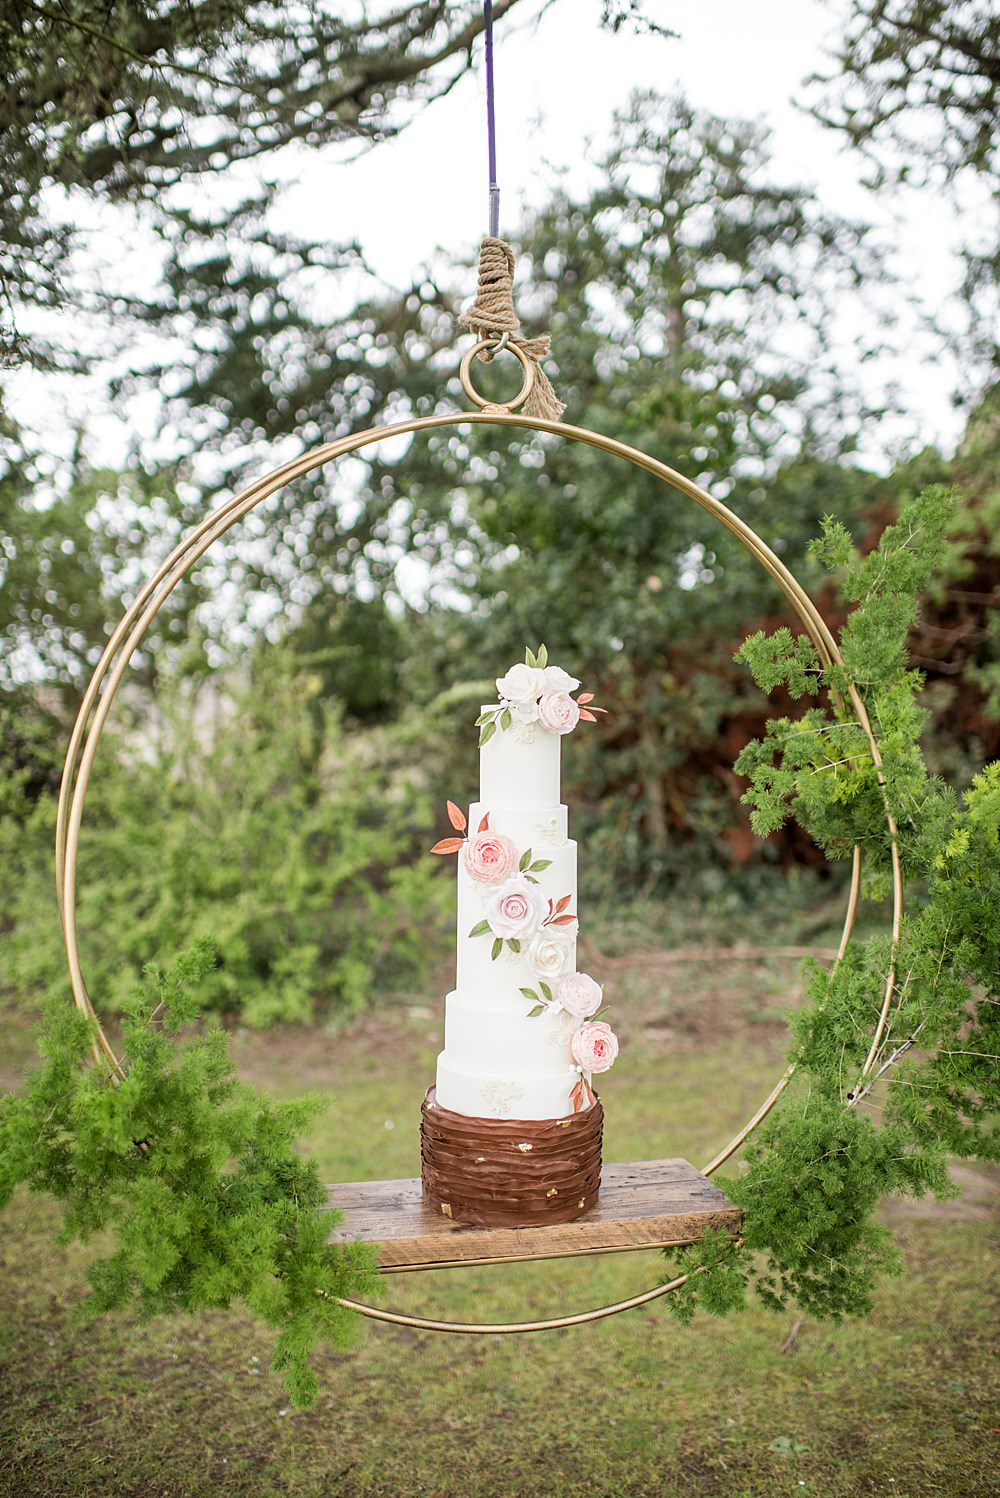 Cake Table Hoop Suspended Swing Peach Gold Wedding Ideas Jane Beadnell Photography